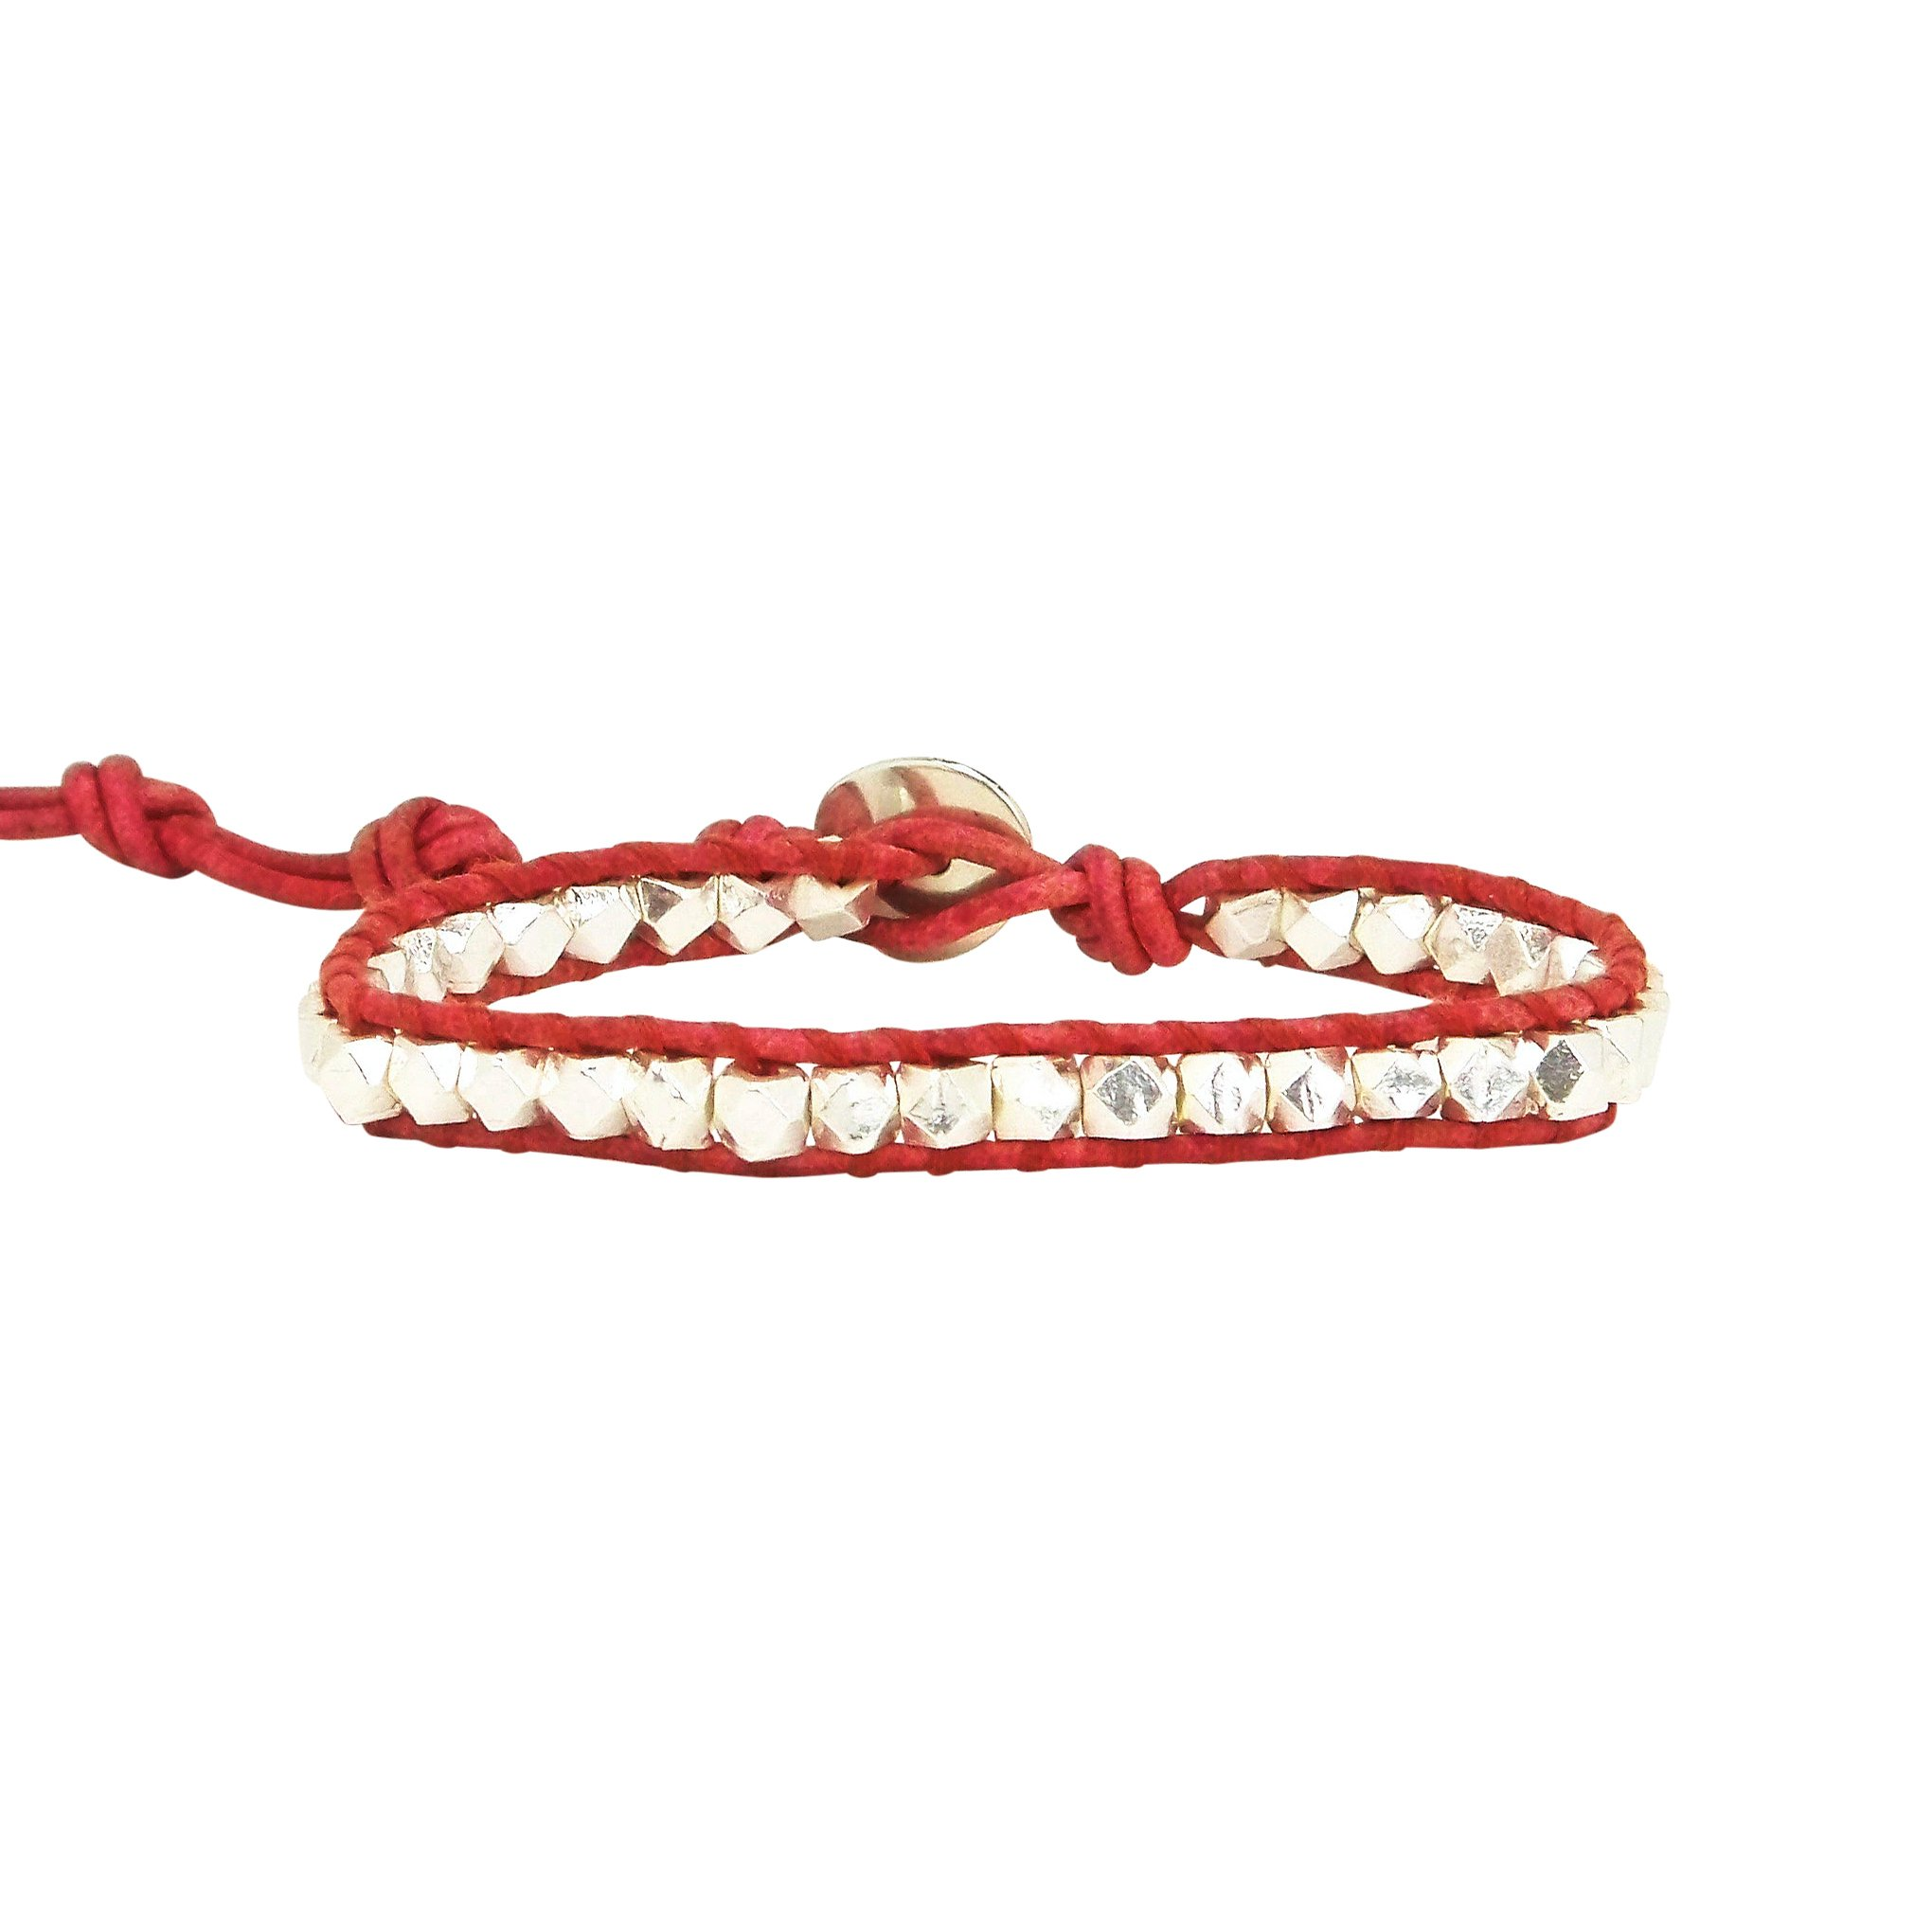 Chan Luu Single Wrap Bracelet in Silver Nuggets and Red Leather